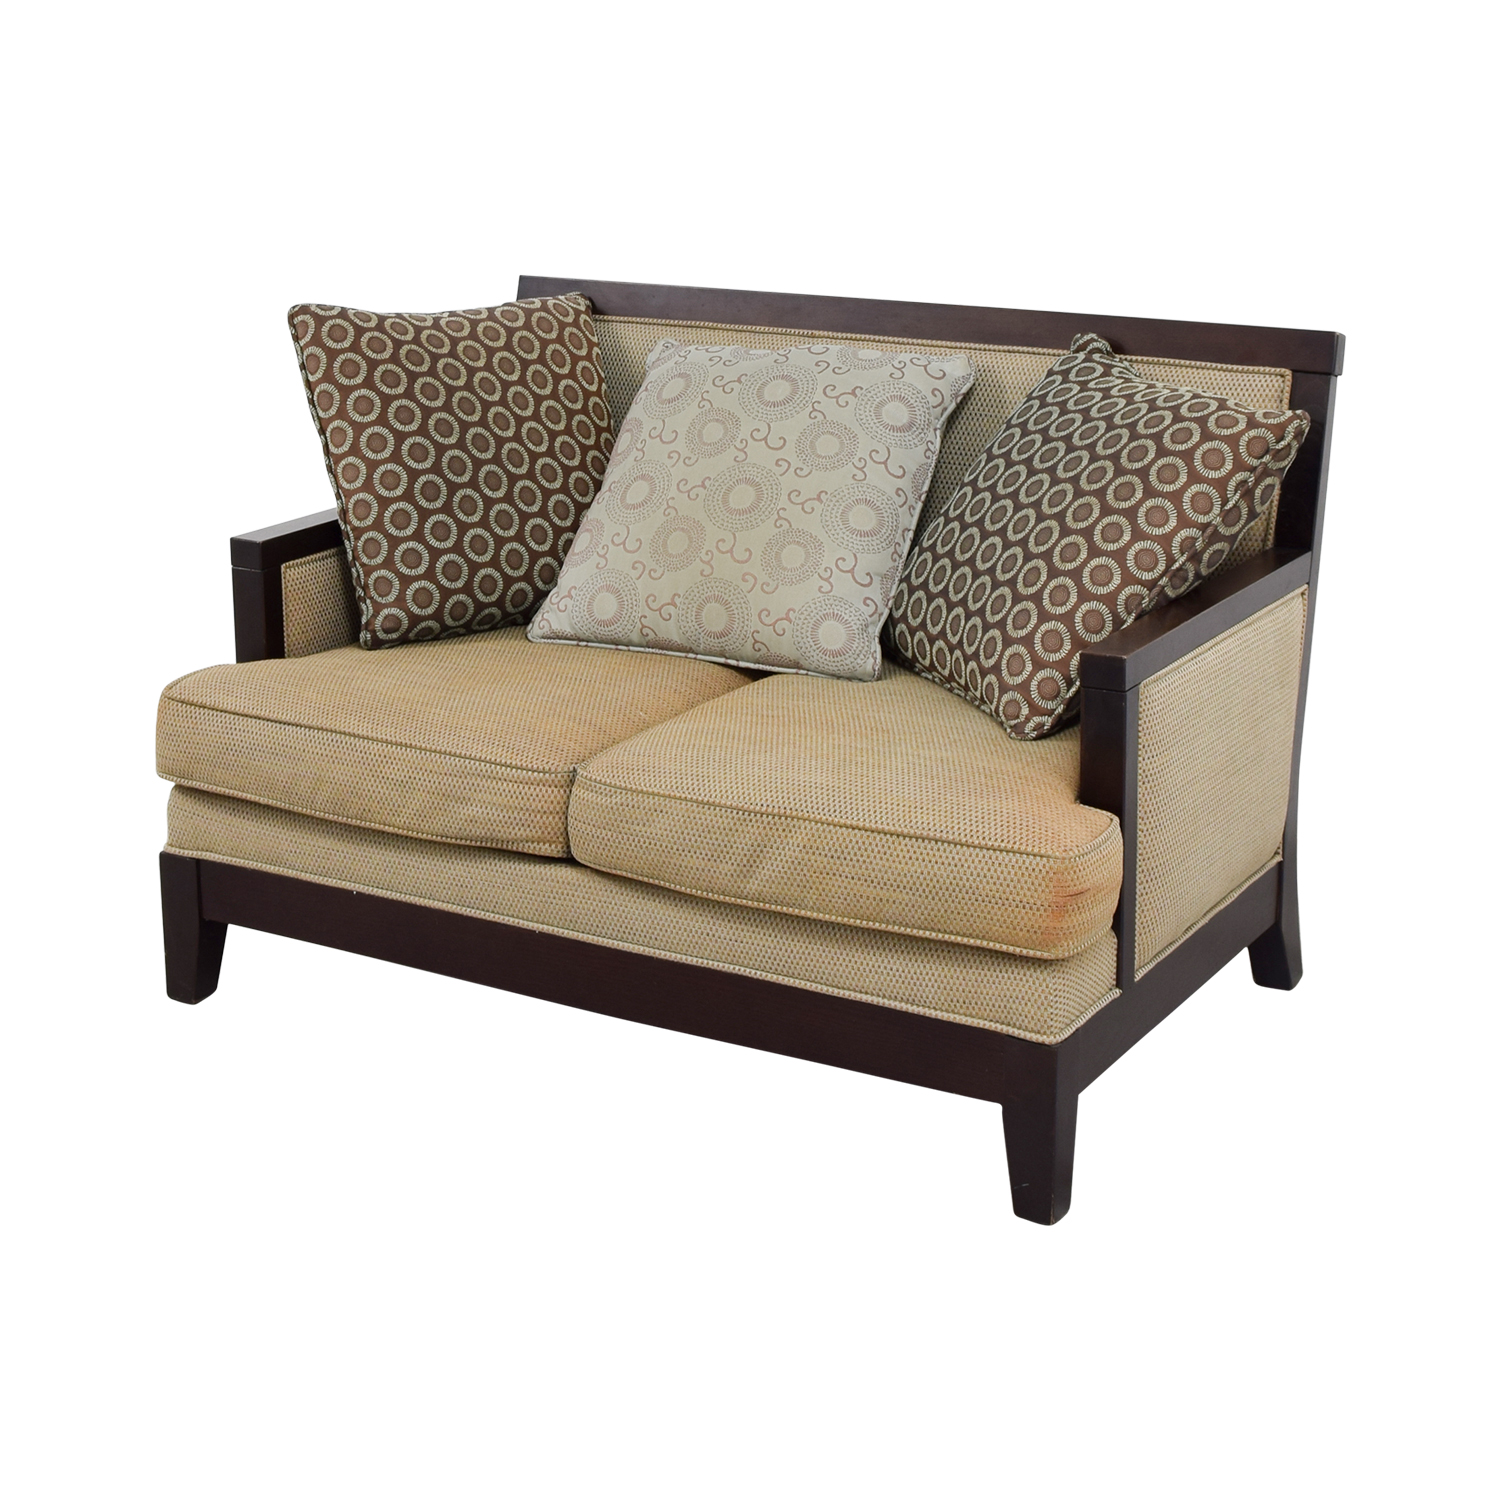 Tan with Wood Frame Love Seat used